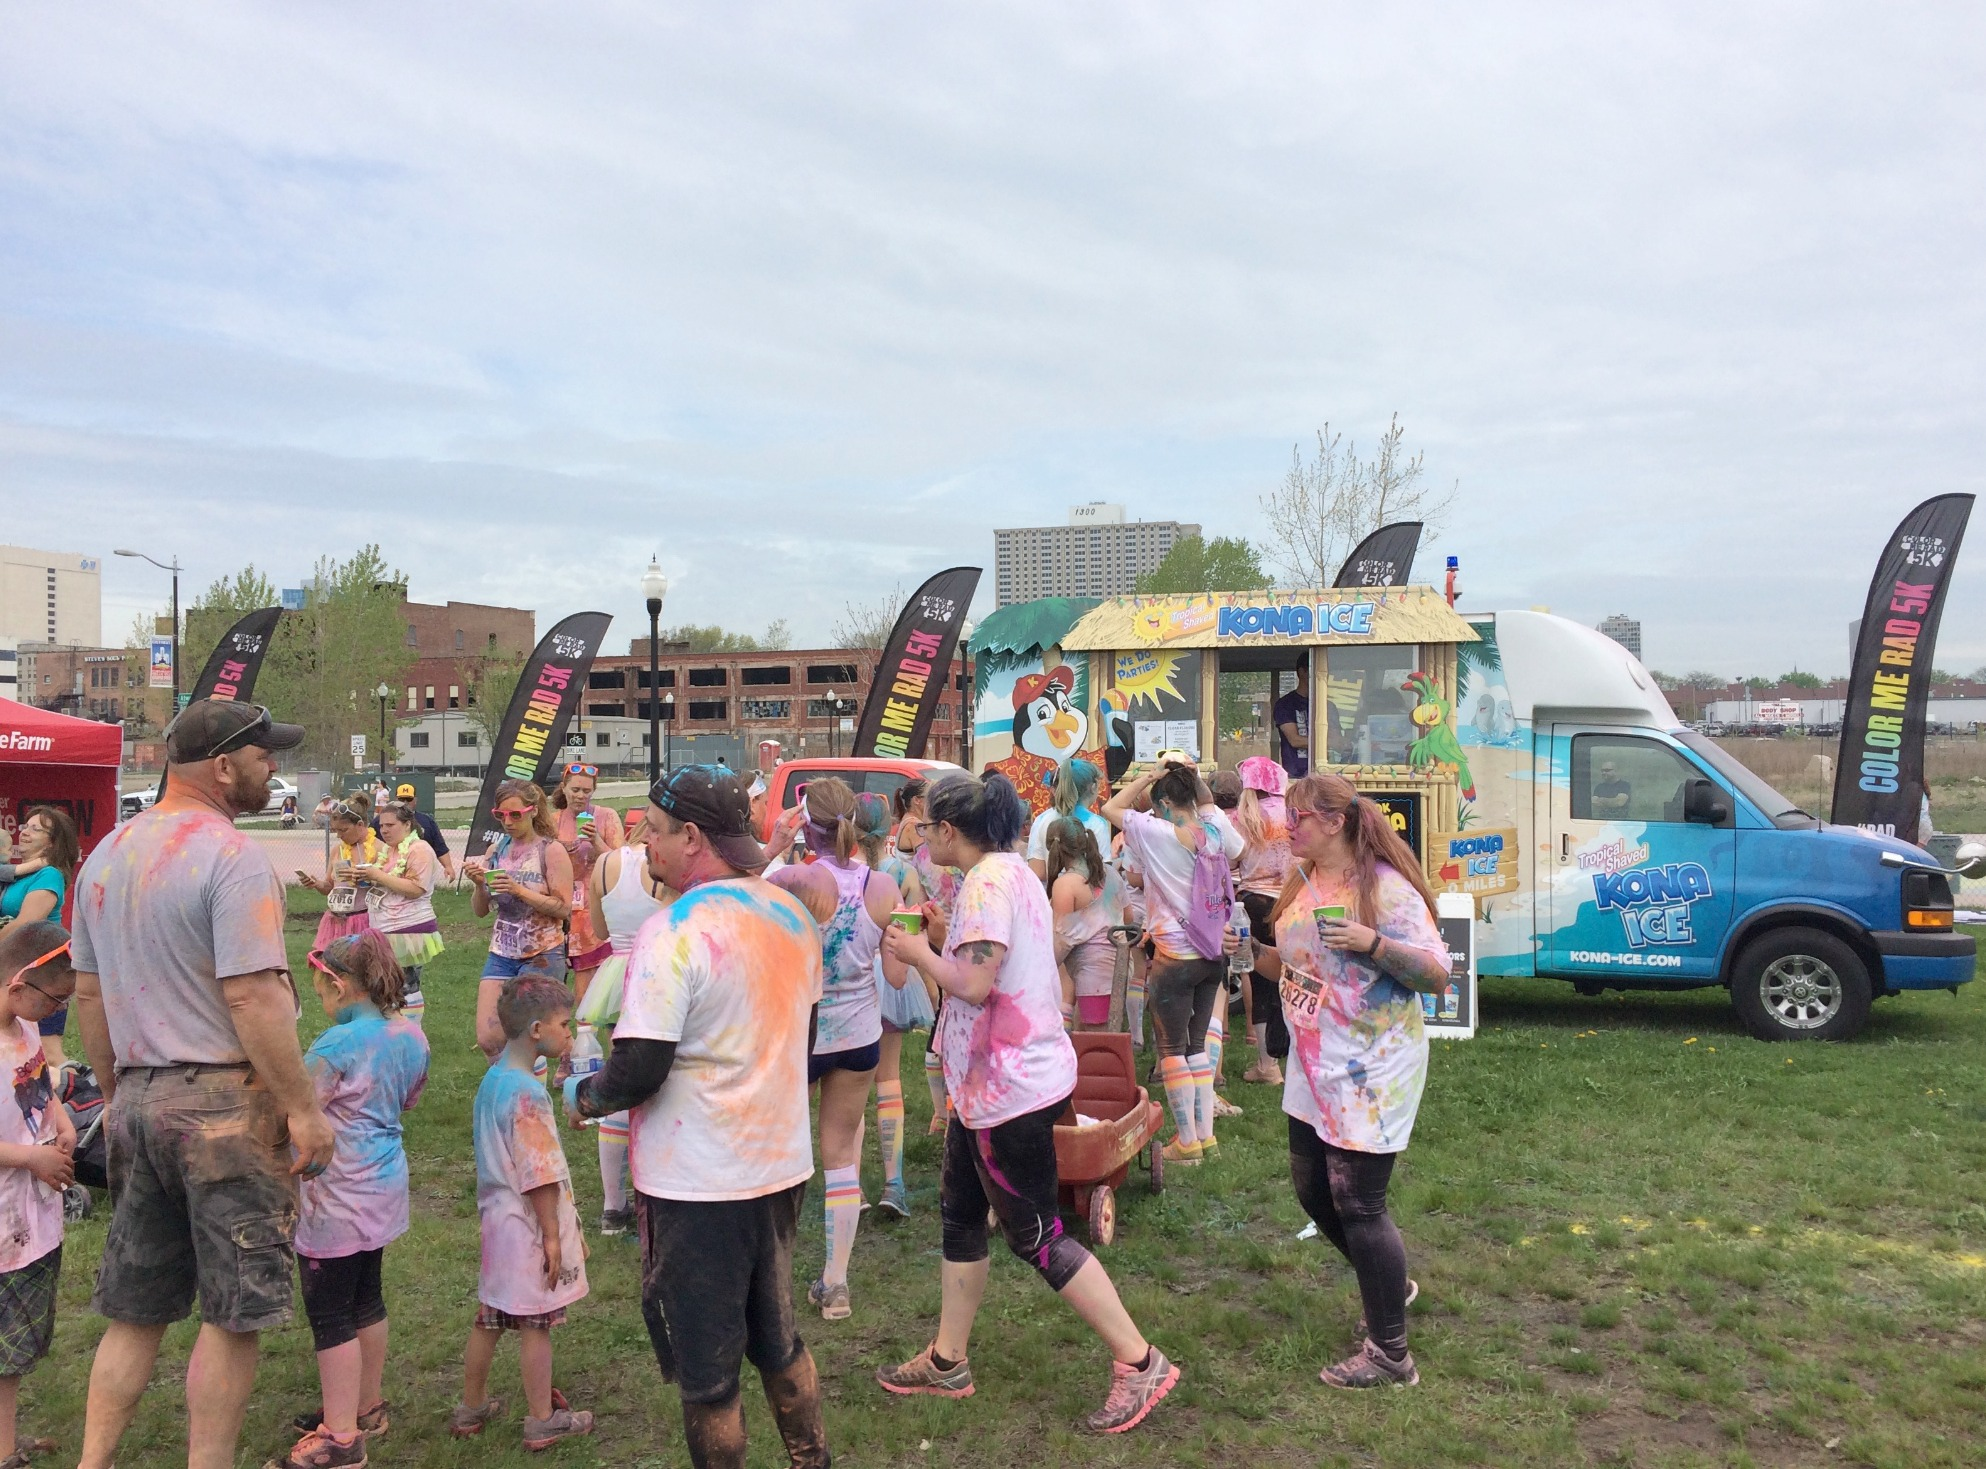 color me rad food trucks